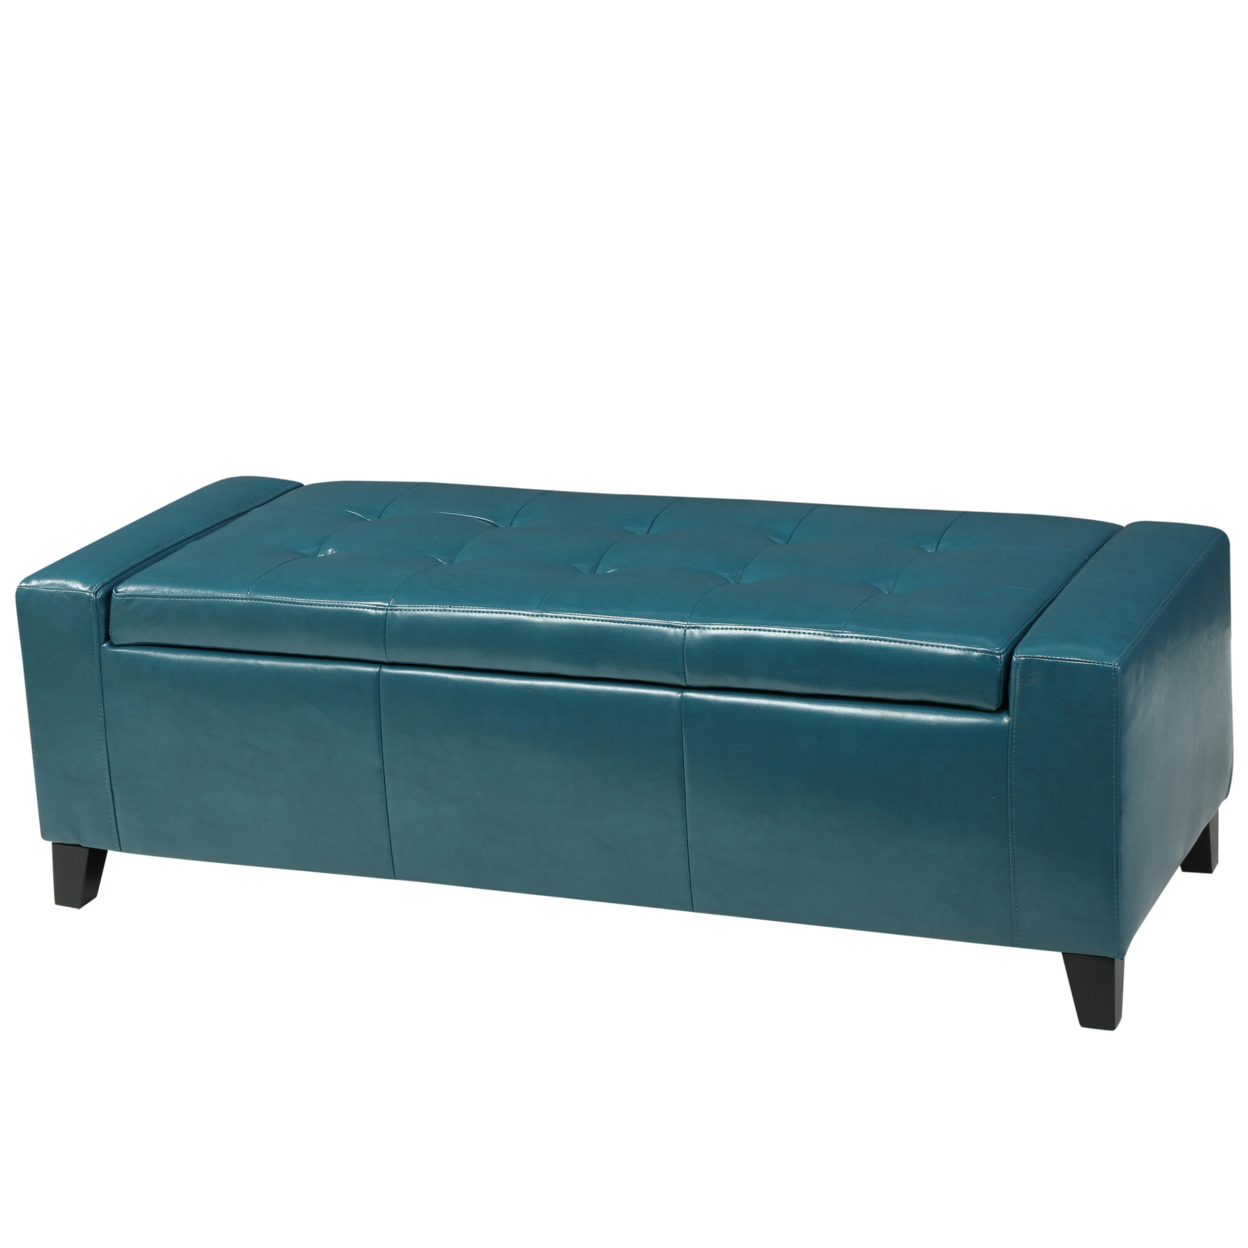 Robin Teal Leather Storage Ottoman Bench гарнитура akg y50 teal